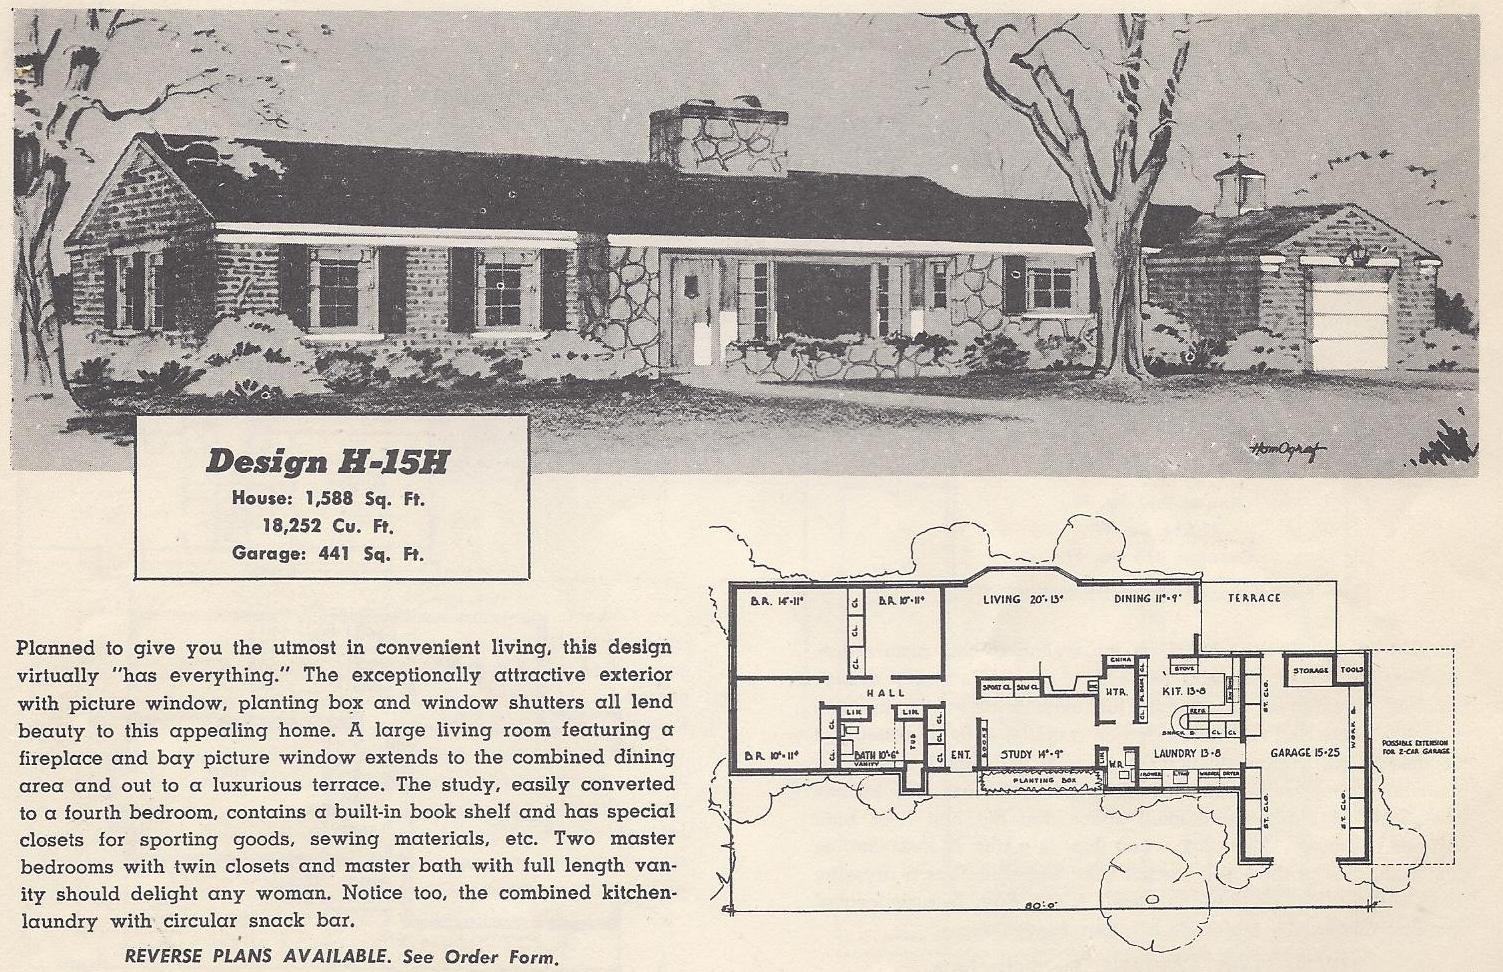 Vintage house plans 15h antique alter ego for New home plans that look old